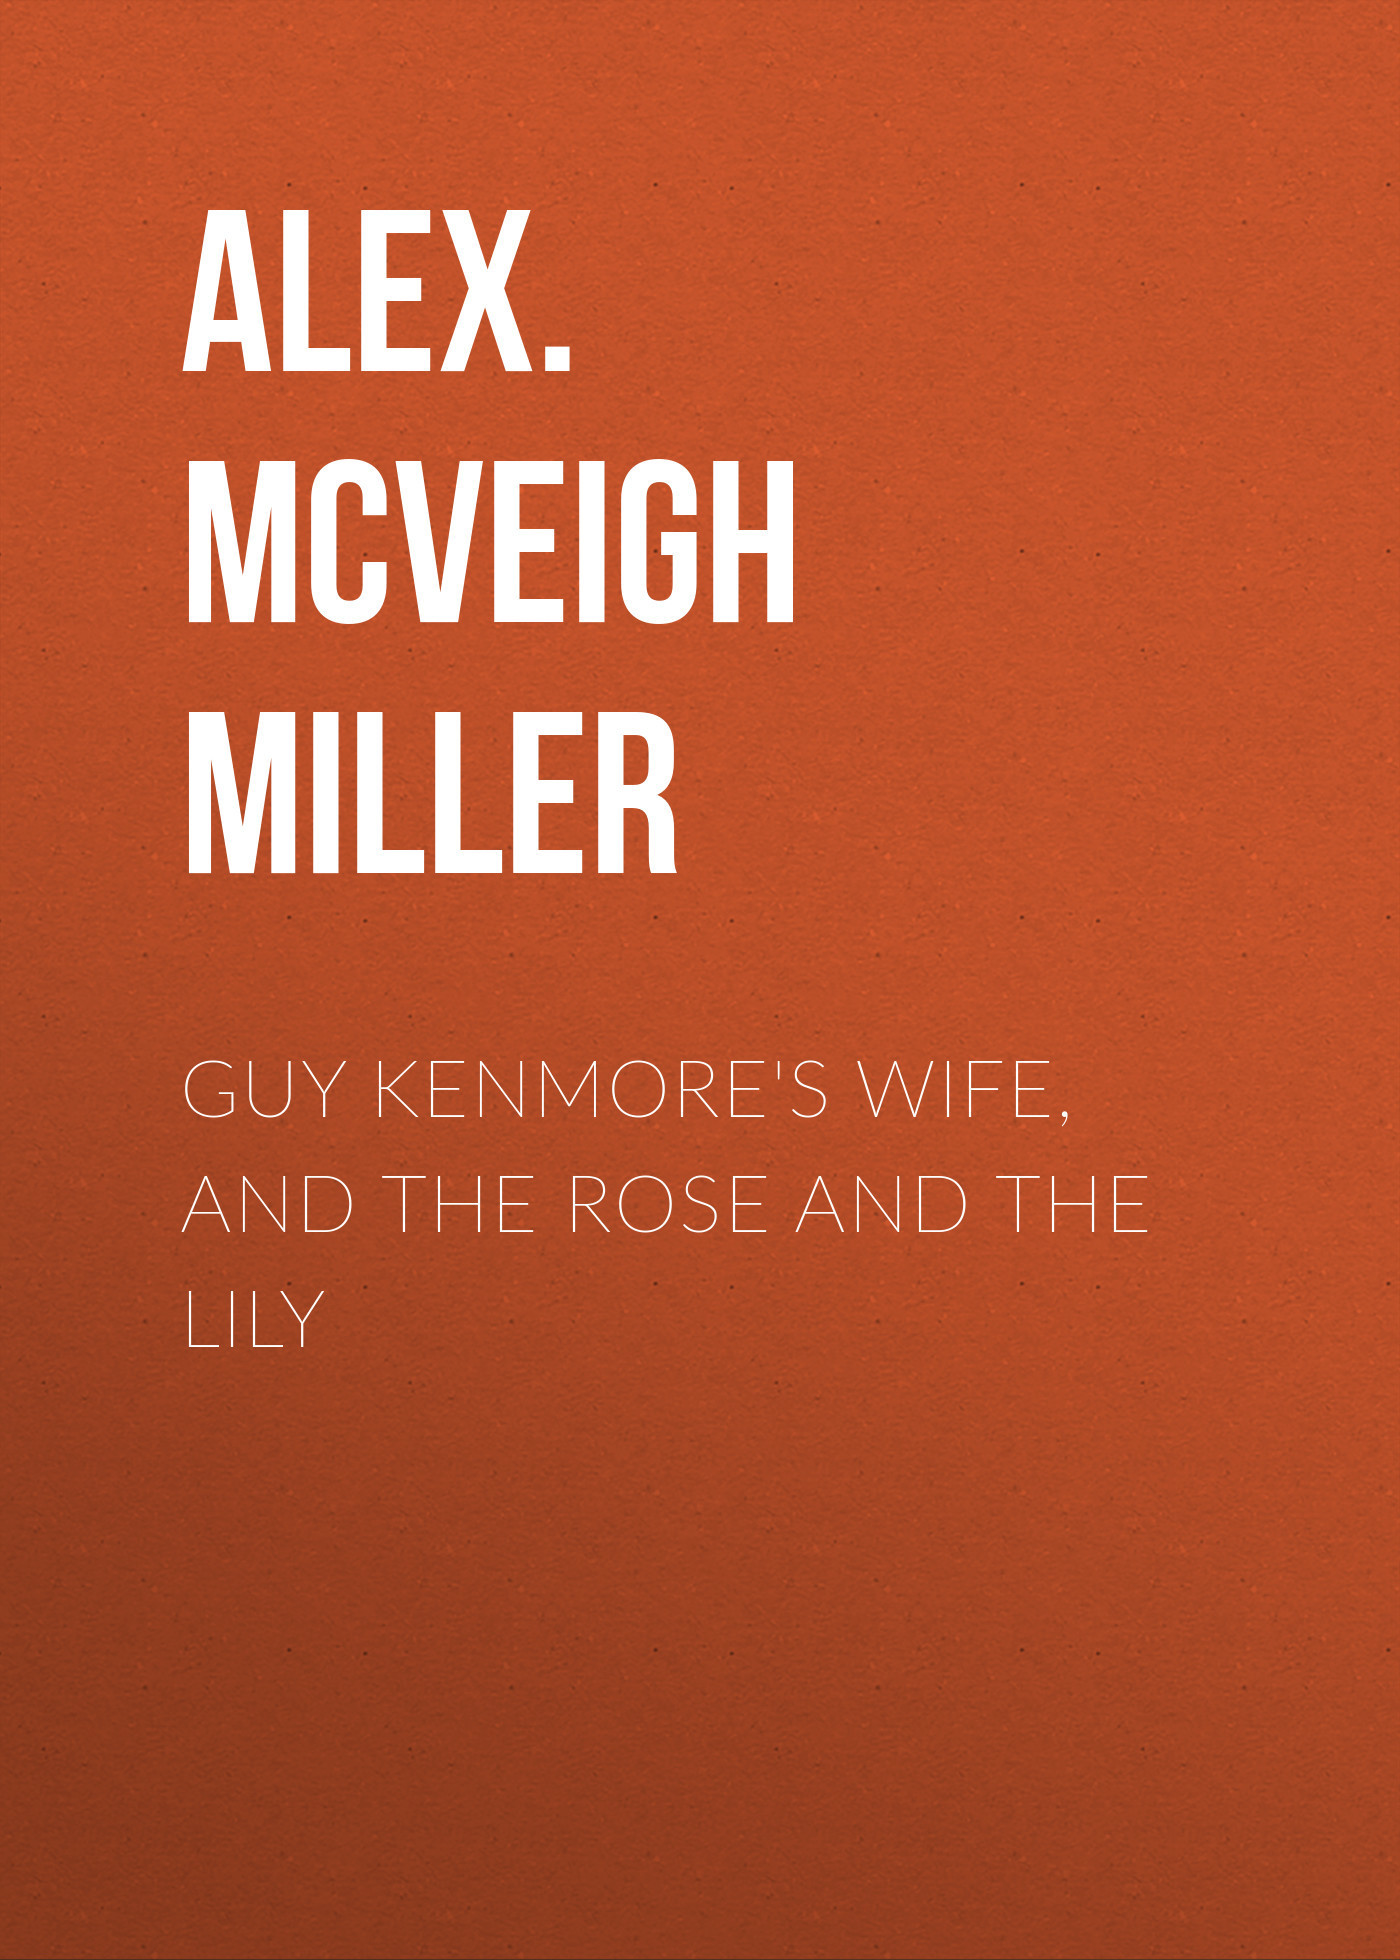 Alex. McVeigh Miller Guy Kenmore's Wife, and The Rose and the Lily the aviator s wife